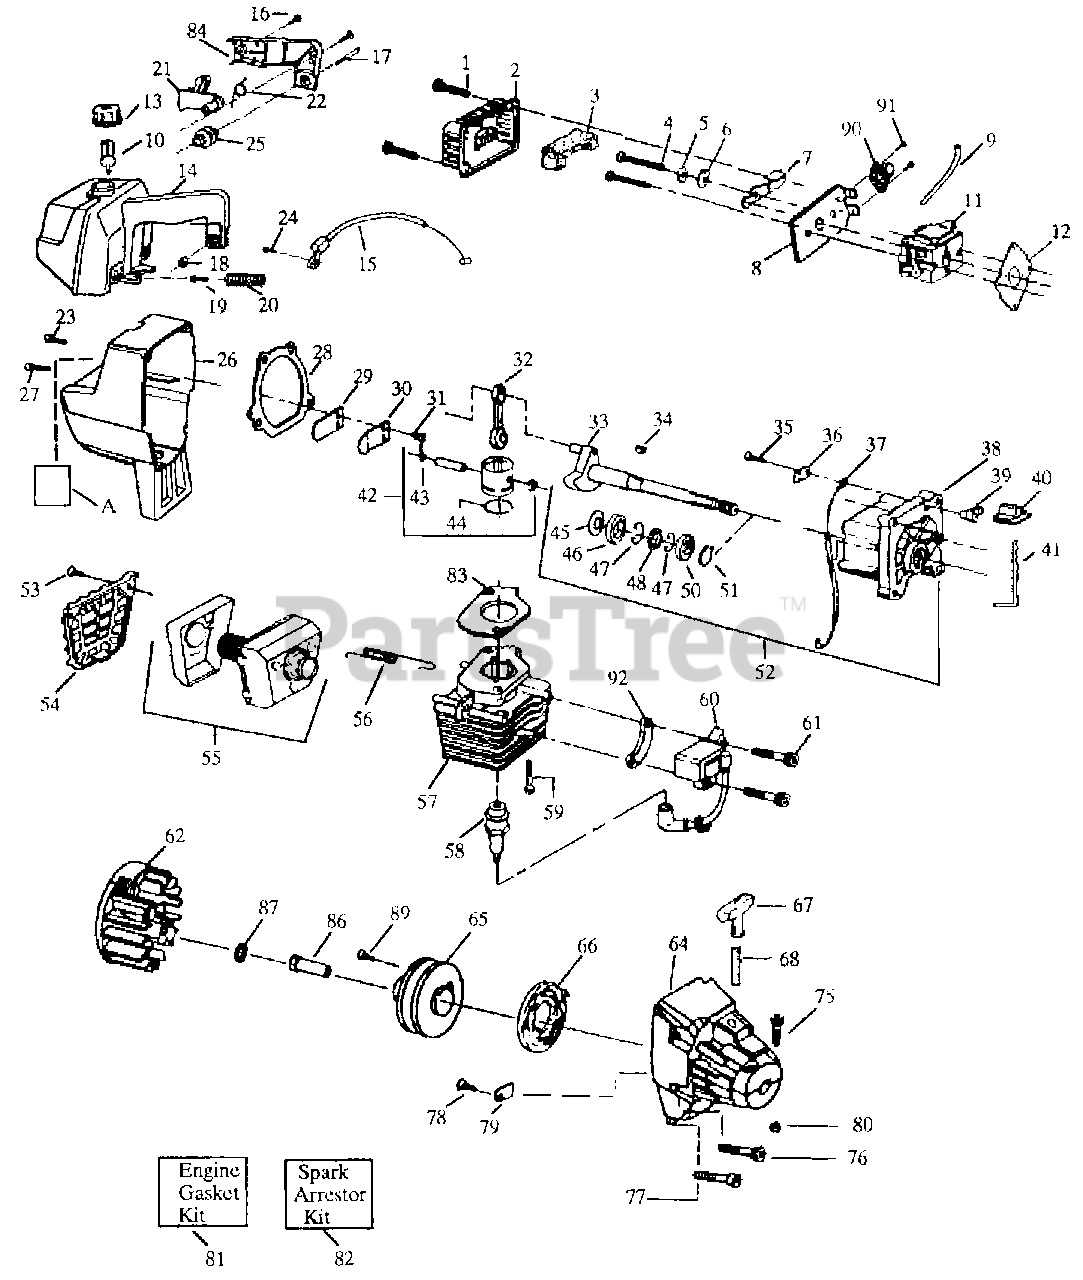 weed eater gti 17 le weed eater string trimmer engine assy weed eater head diagram weedeater engine diagram #11